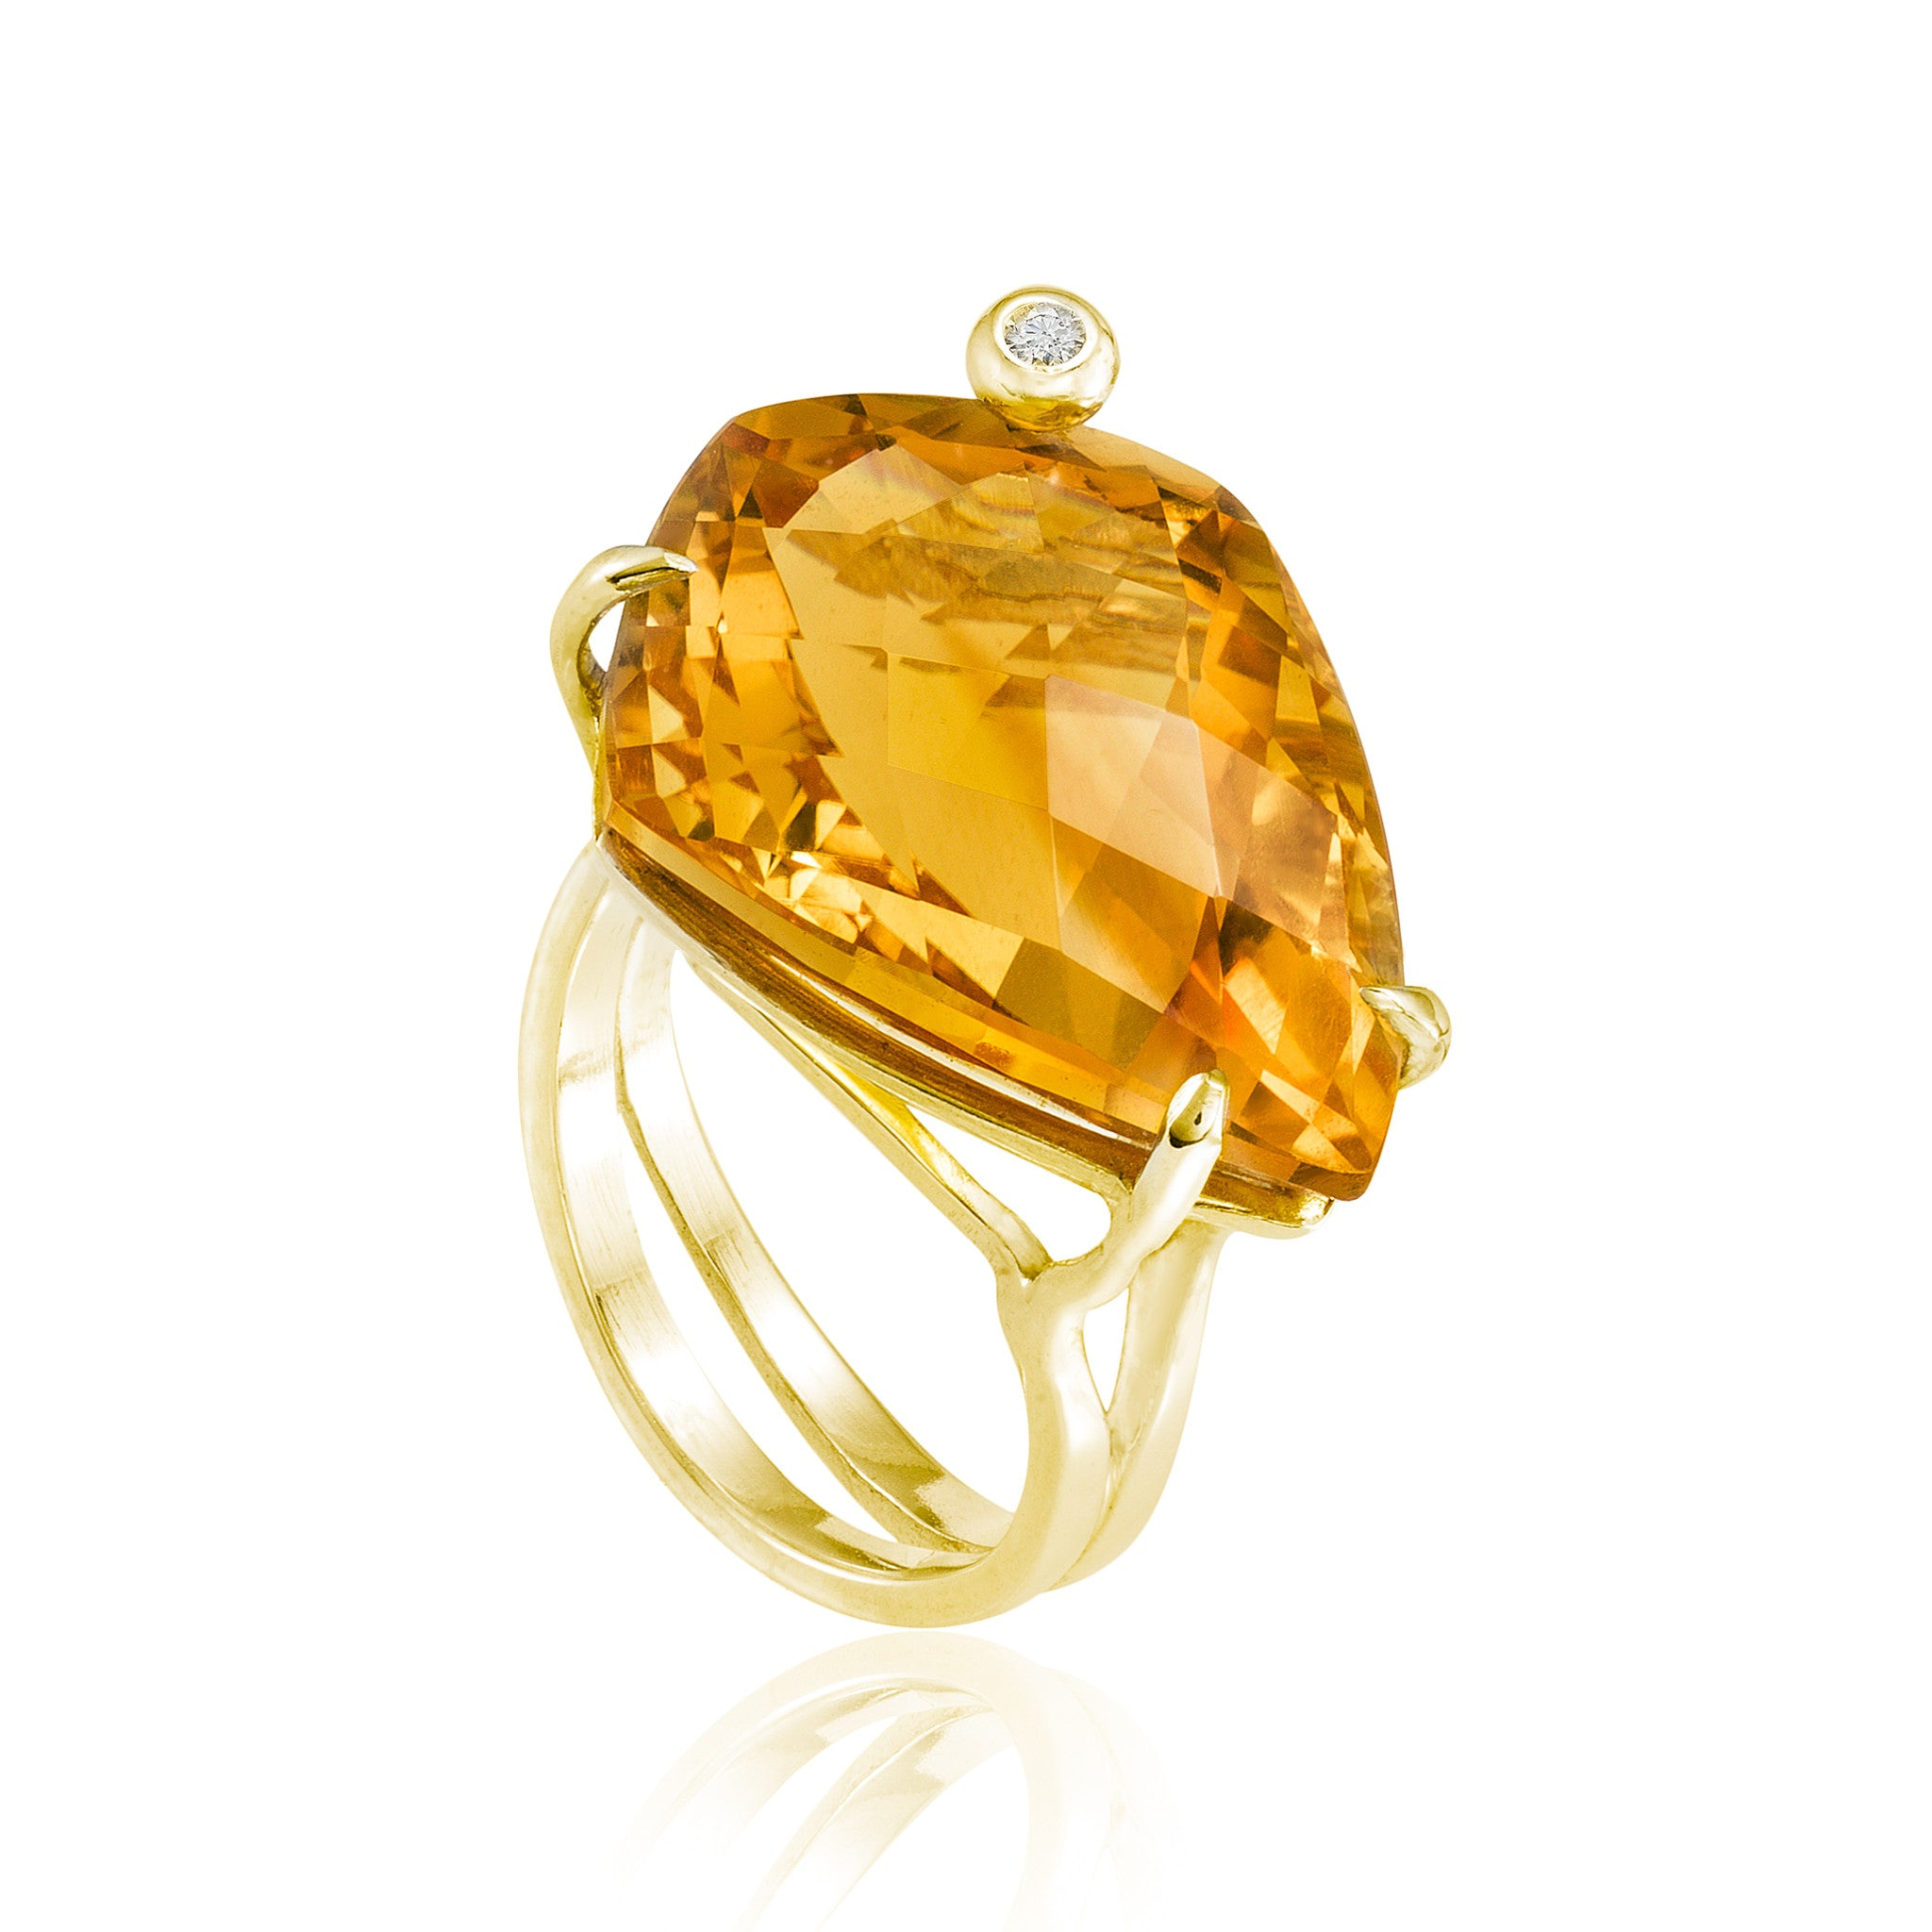 yellow imagine amber products gold diamonds y rings perp ring engagement pave